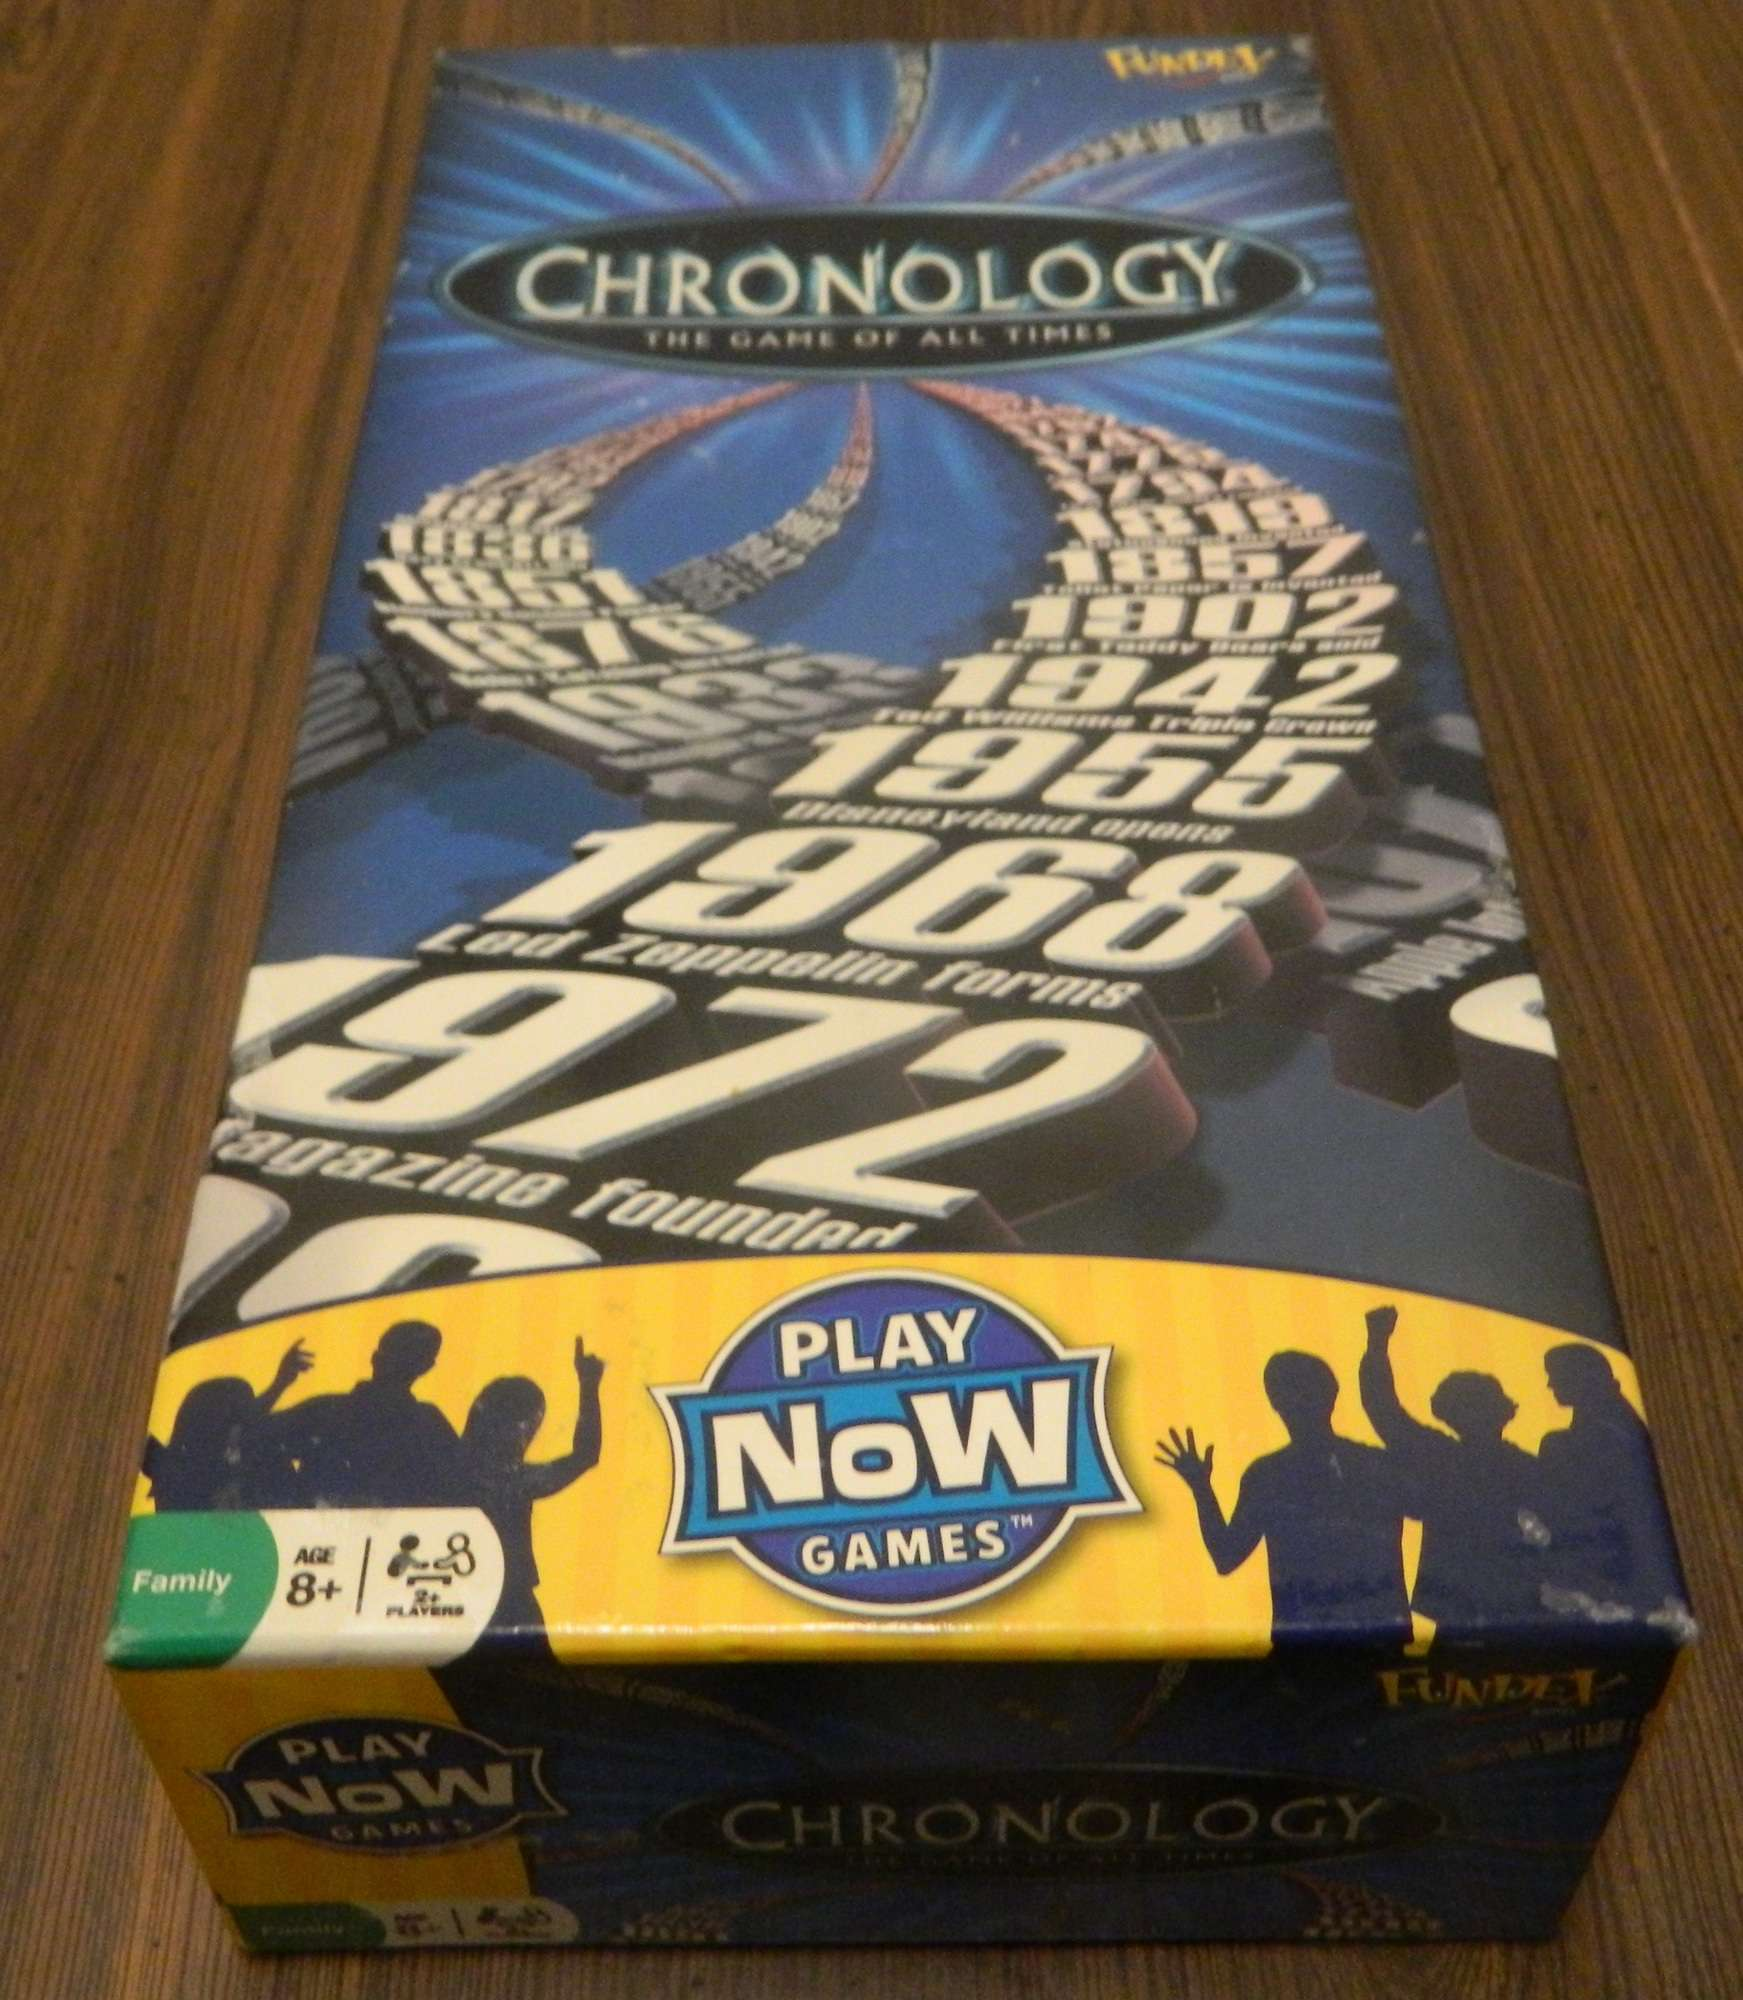 Picture of the box for Chronology